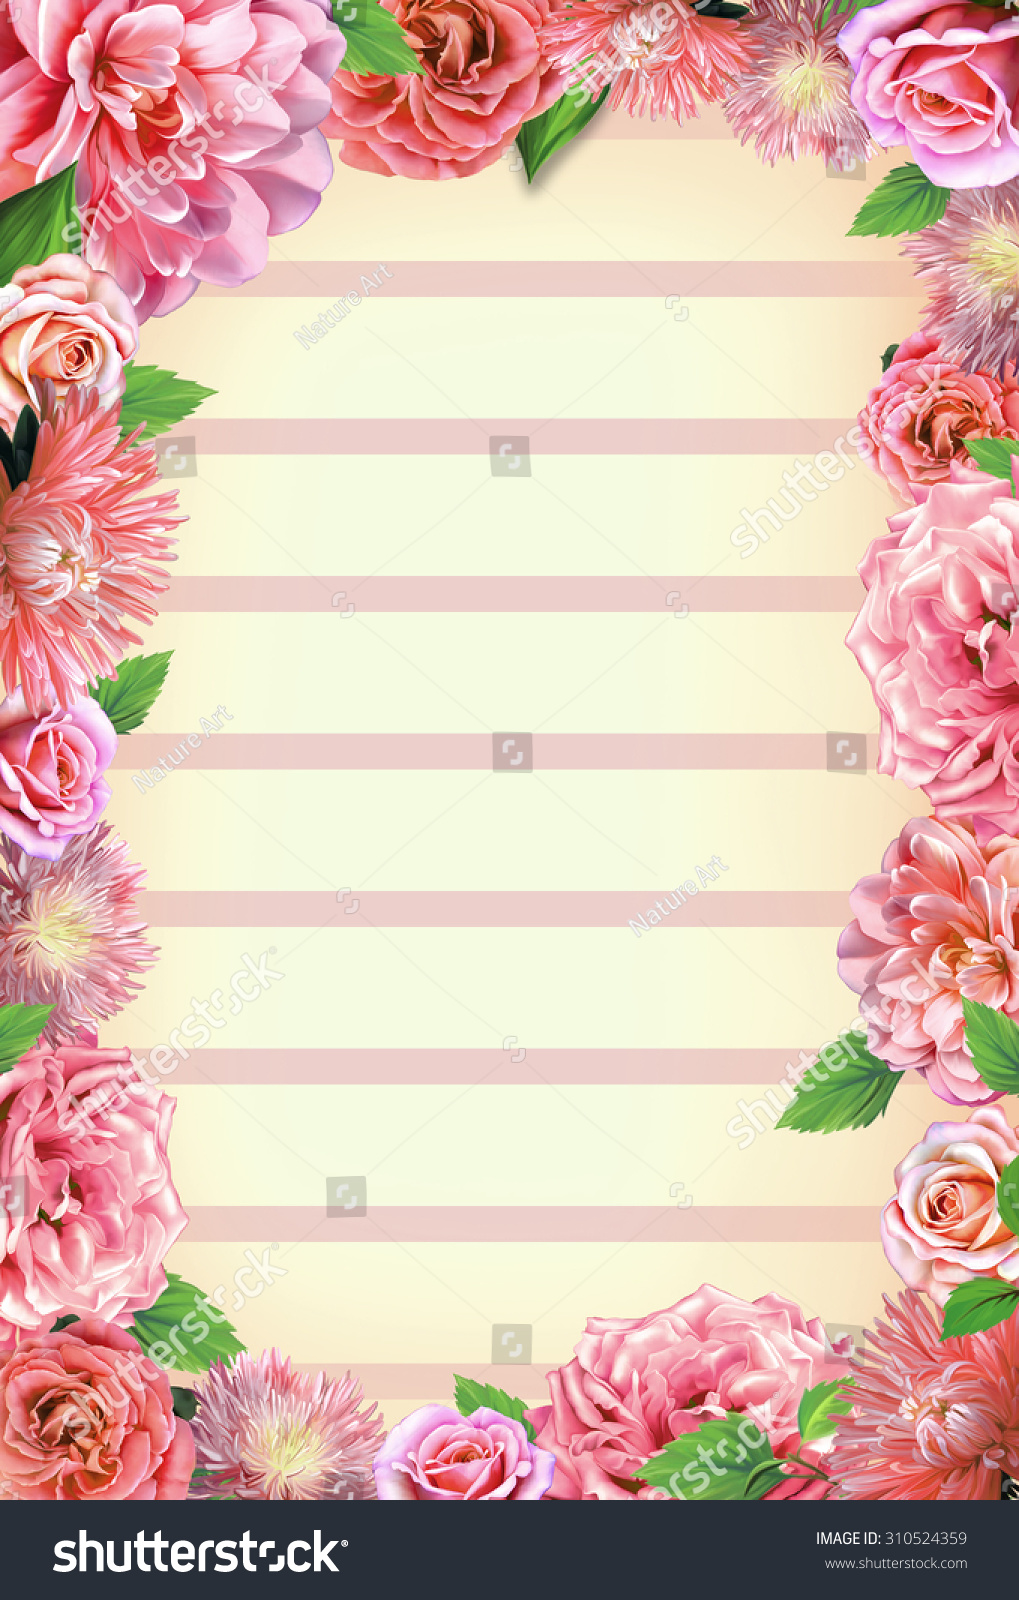 Wedding Vintage Romantic Background Roses Camellia Stock ...